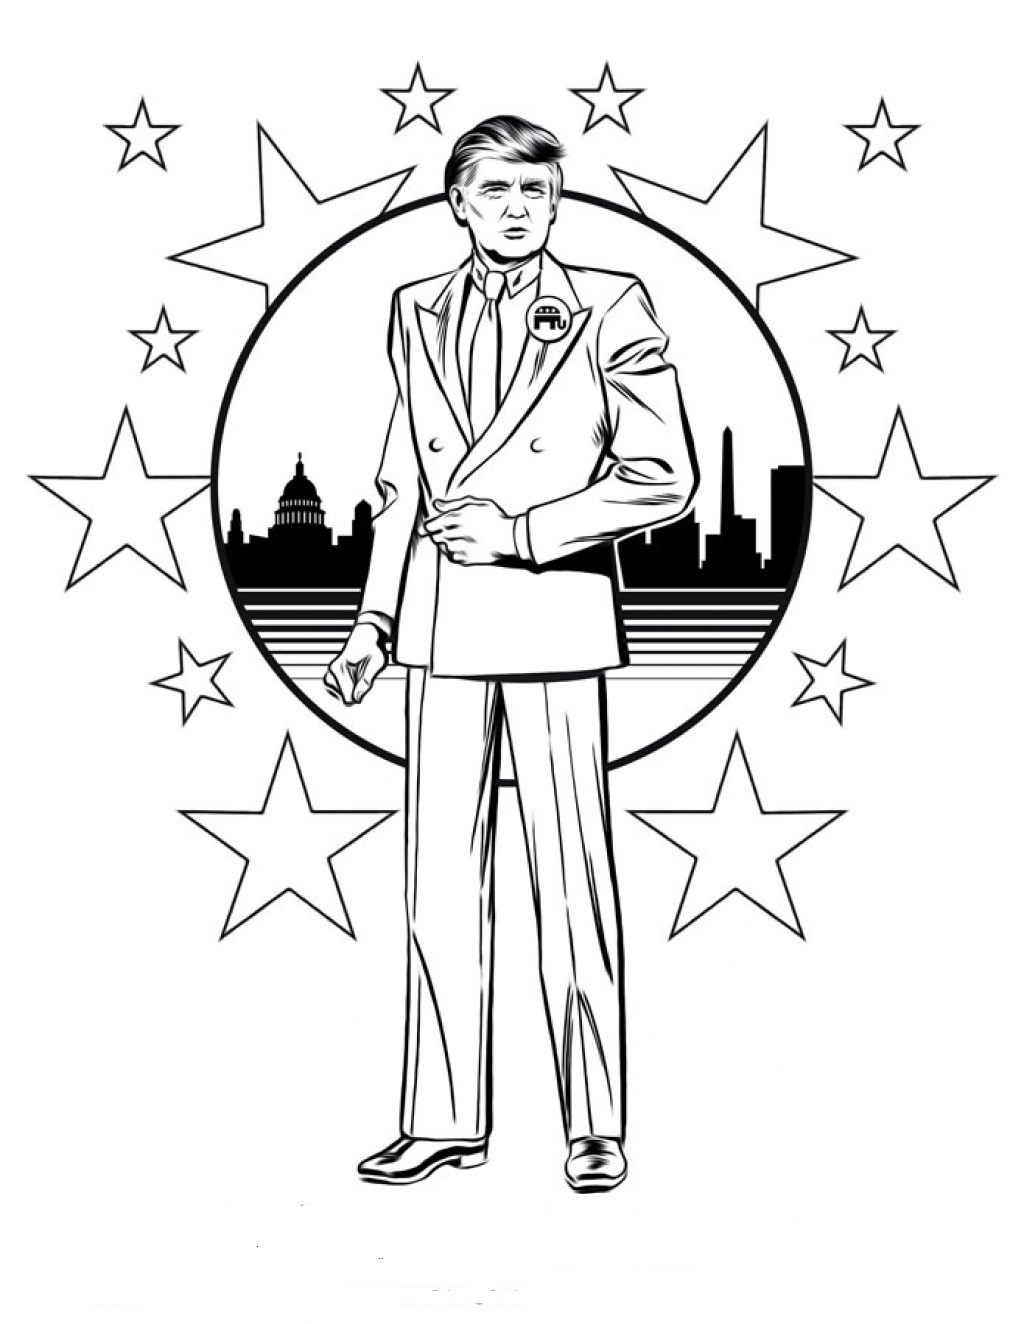 coloring page of donald trump coloring books donald trump coloring page more pins donald trump coloring page of